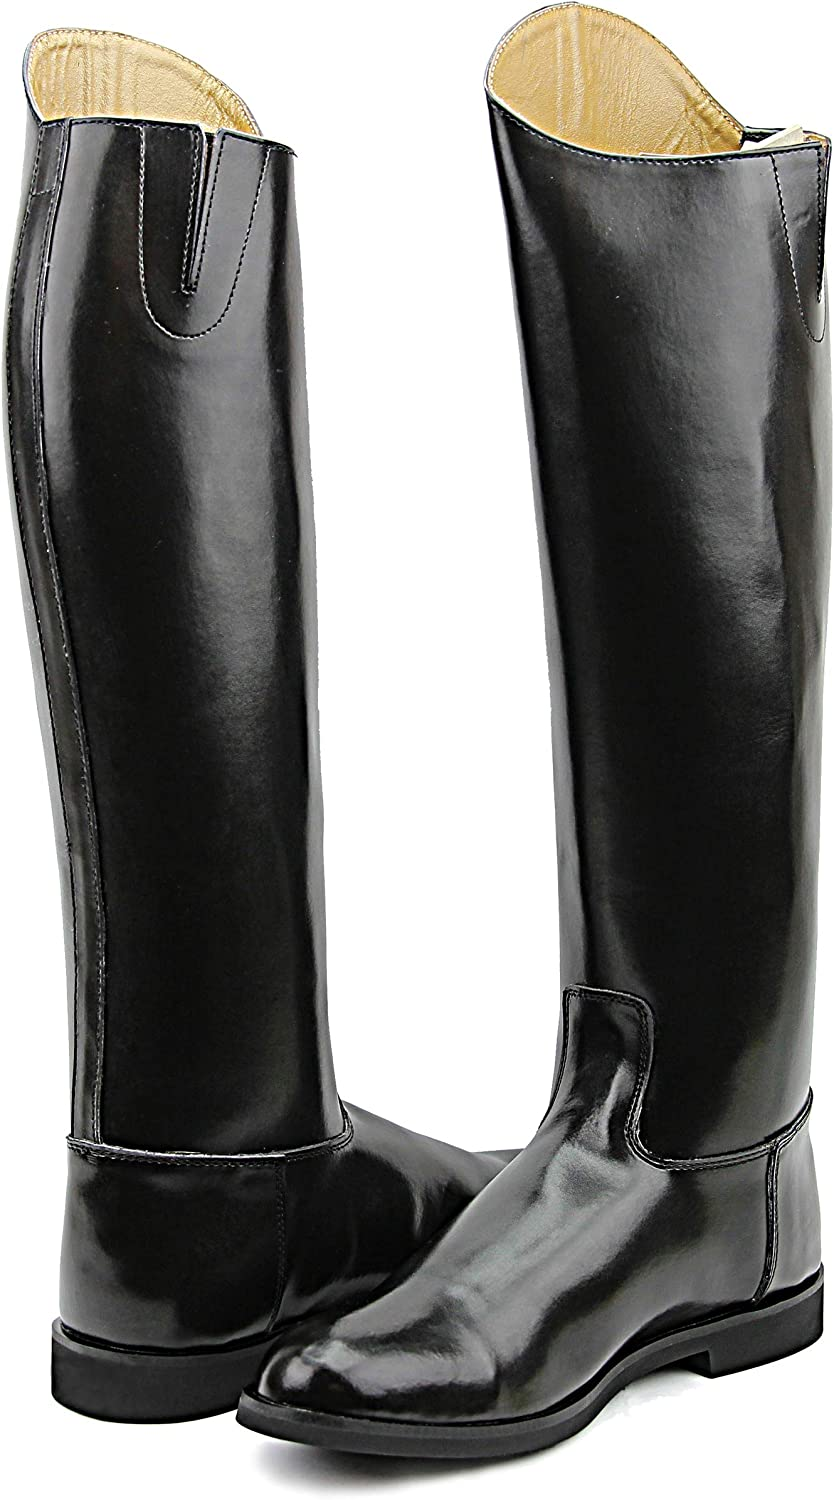 HisparメンズMan DecentドレスDressageブーツwithout zipper英語Riding Equestrian ブラック 12 Wide Calf